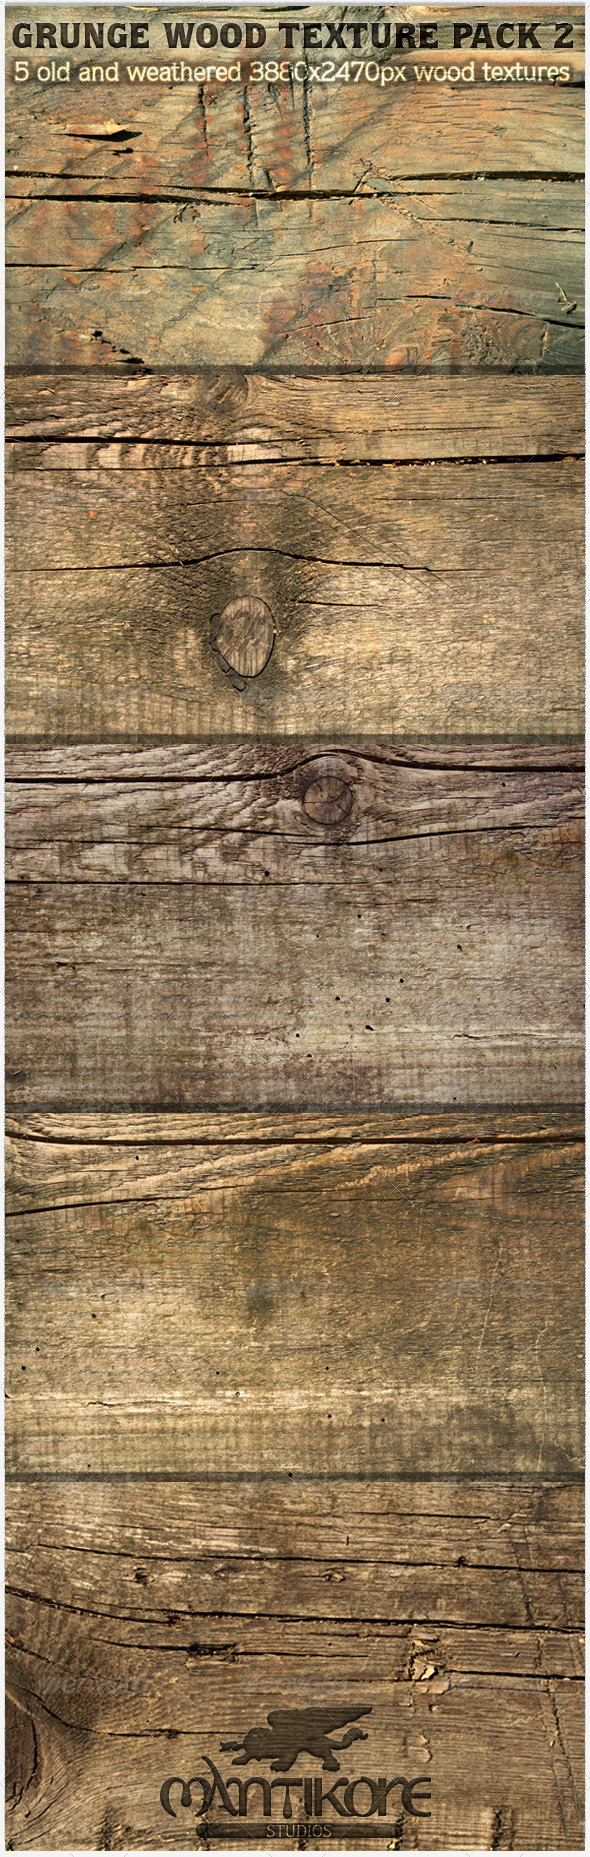 Grunge Wood Texture Pack 2